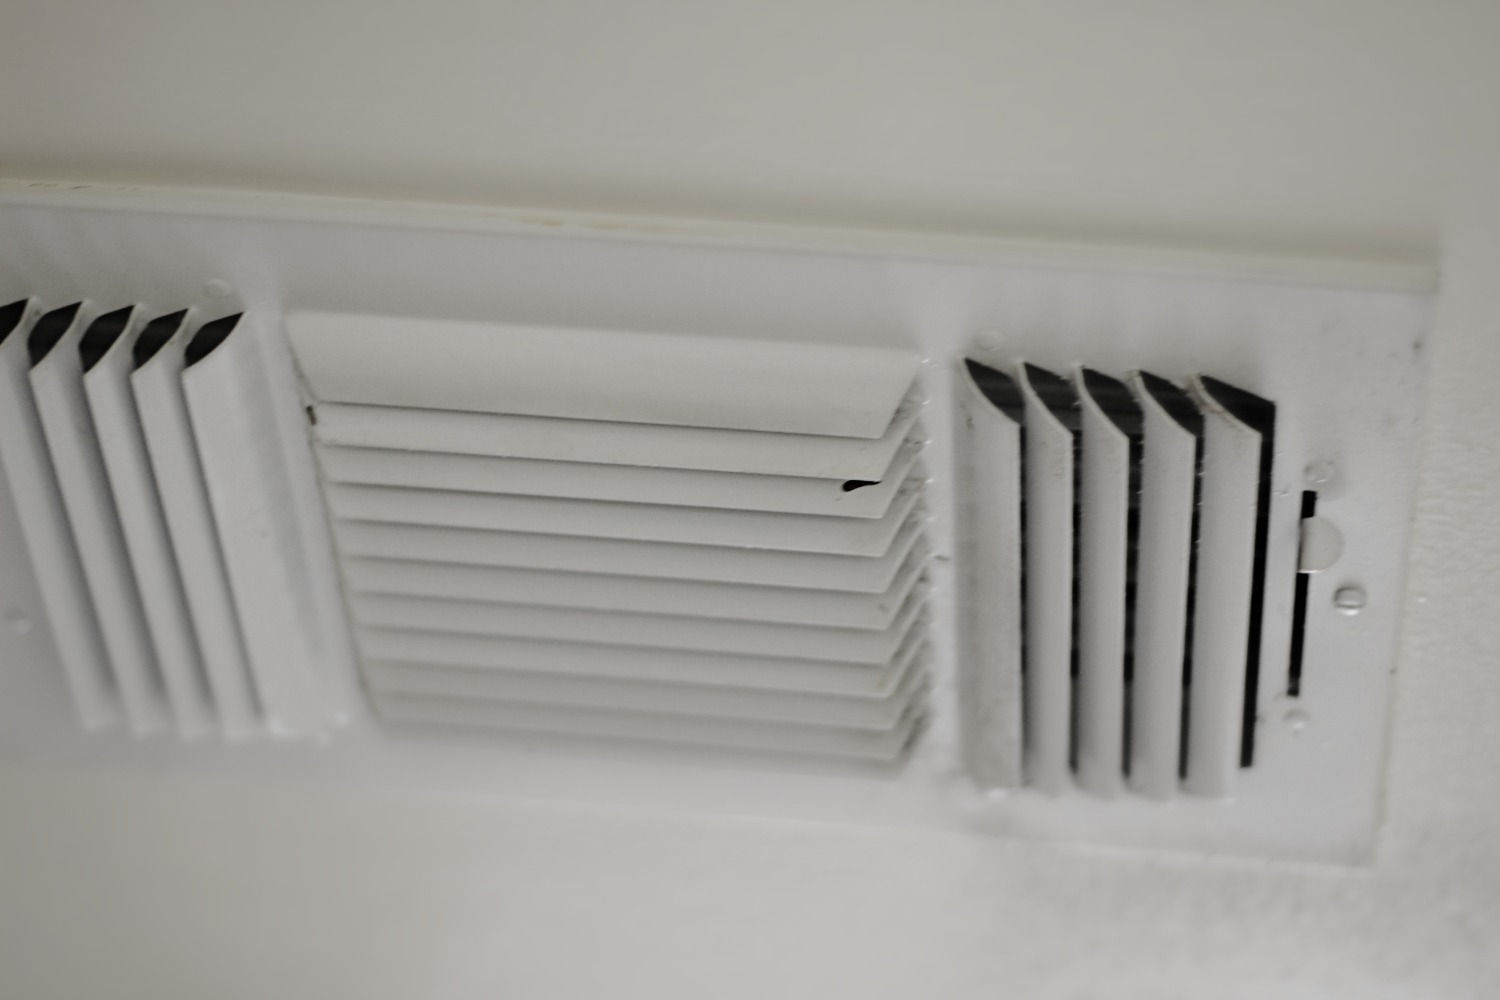 mold in window air conditioner vents expert event. Black Bedroom Furniture Sets. Home Design Ideas